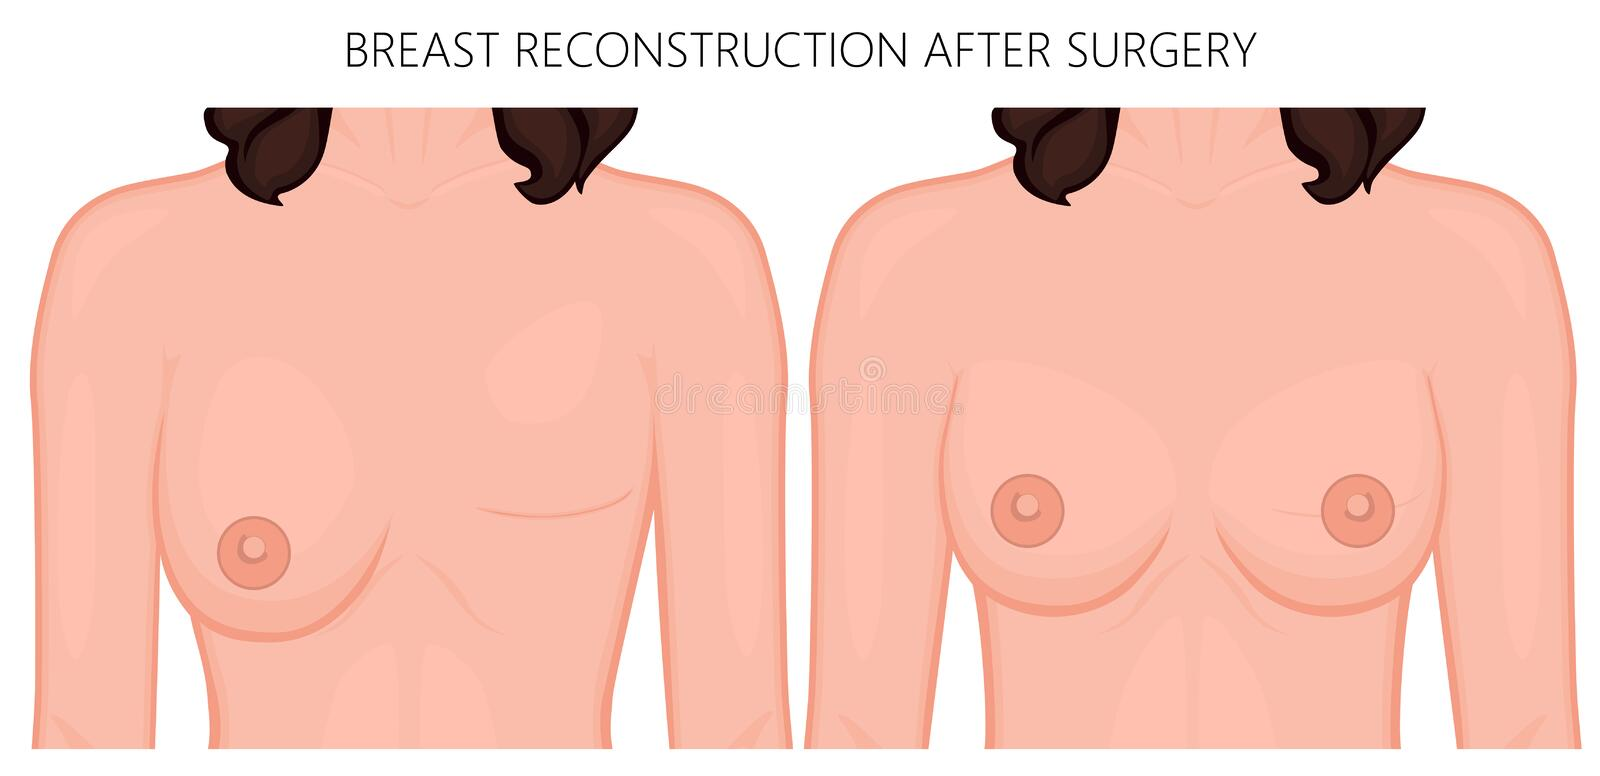 Plastic surgery_Breast reconstruction after surgery. Vector illustration of woman breast reconstruction after surgery. Front view of the woman chest. For royalty free illustration